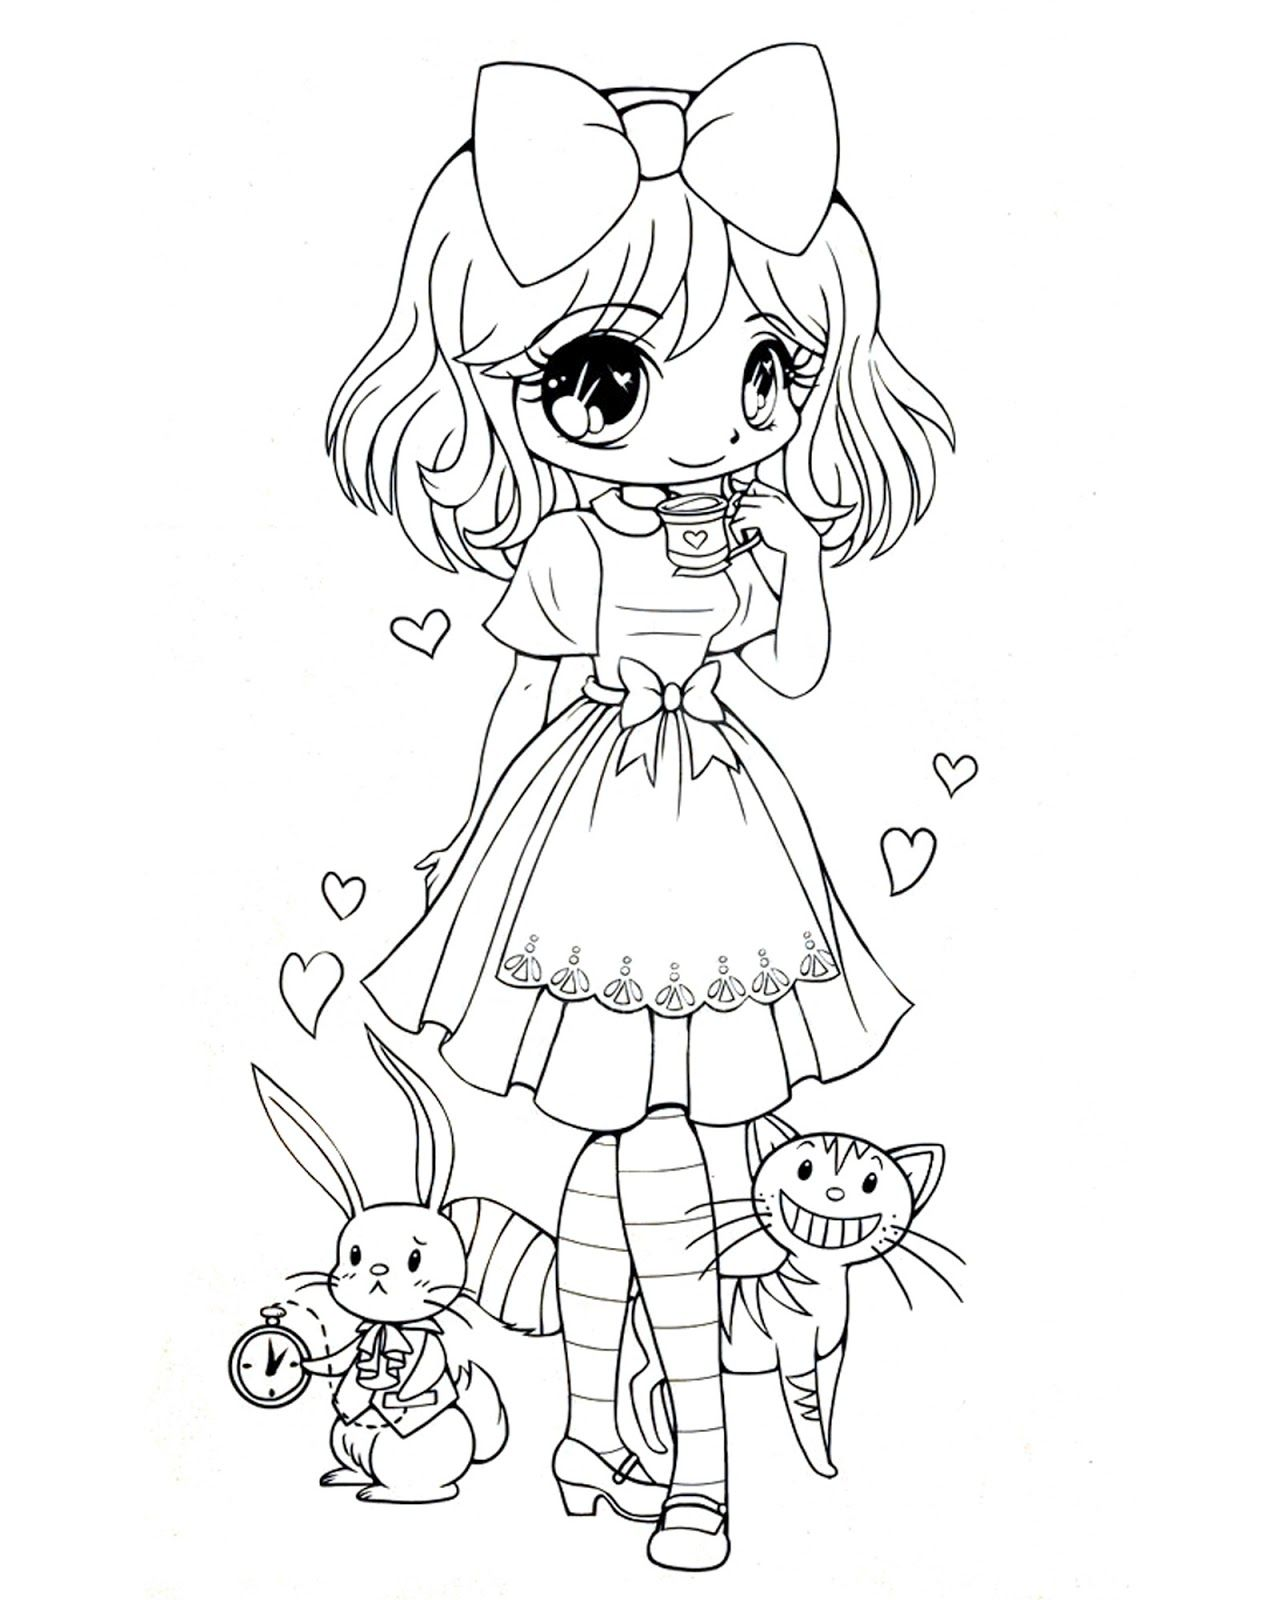 Coloring pages chibi - Find This Pin And More On Digi Stempels Quirky Artist Loft Sweet Lolita Coloring Pages